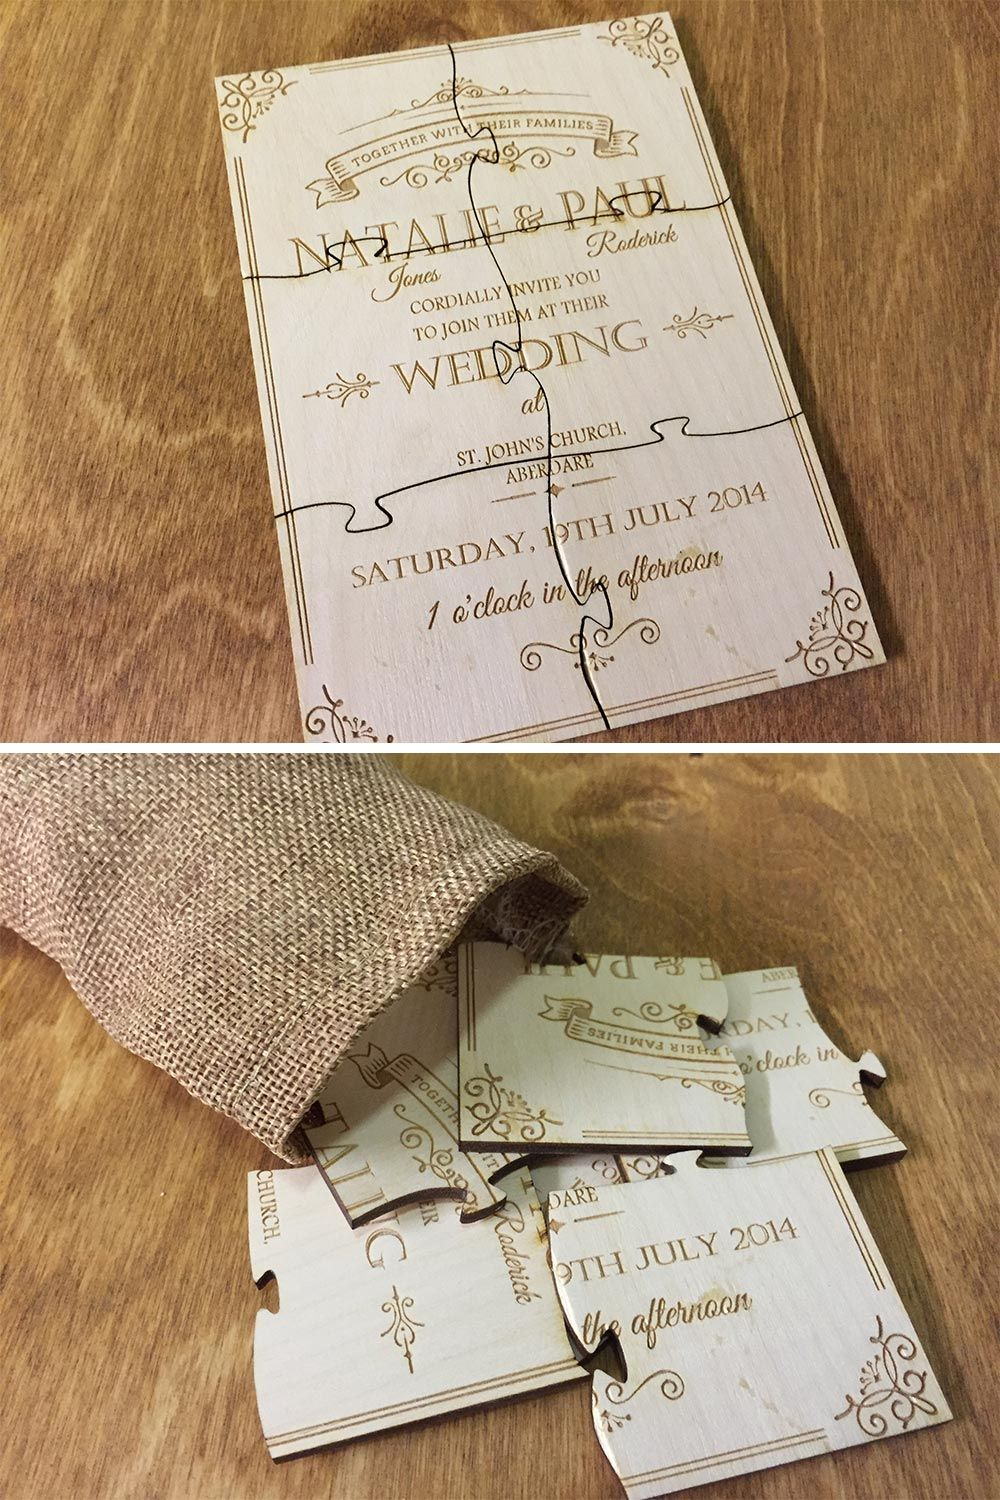 Awesome Alternative Wedding Invitation Ideas for Unconventional